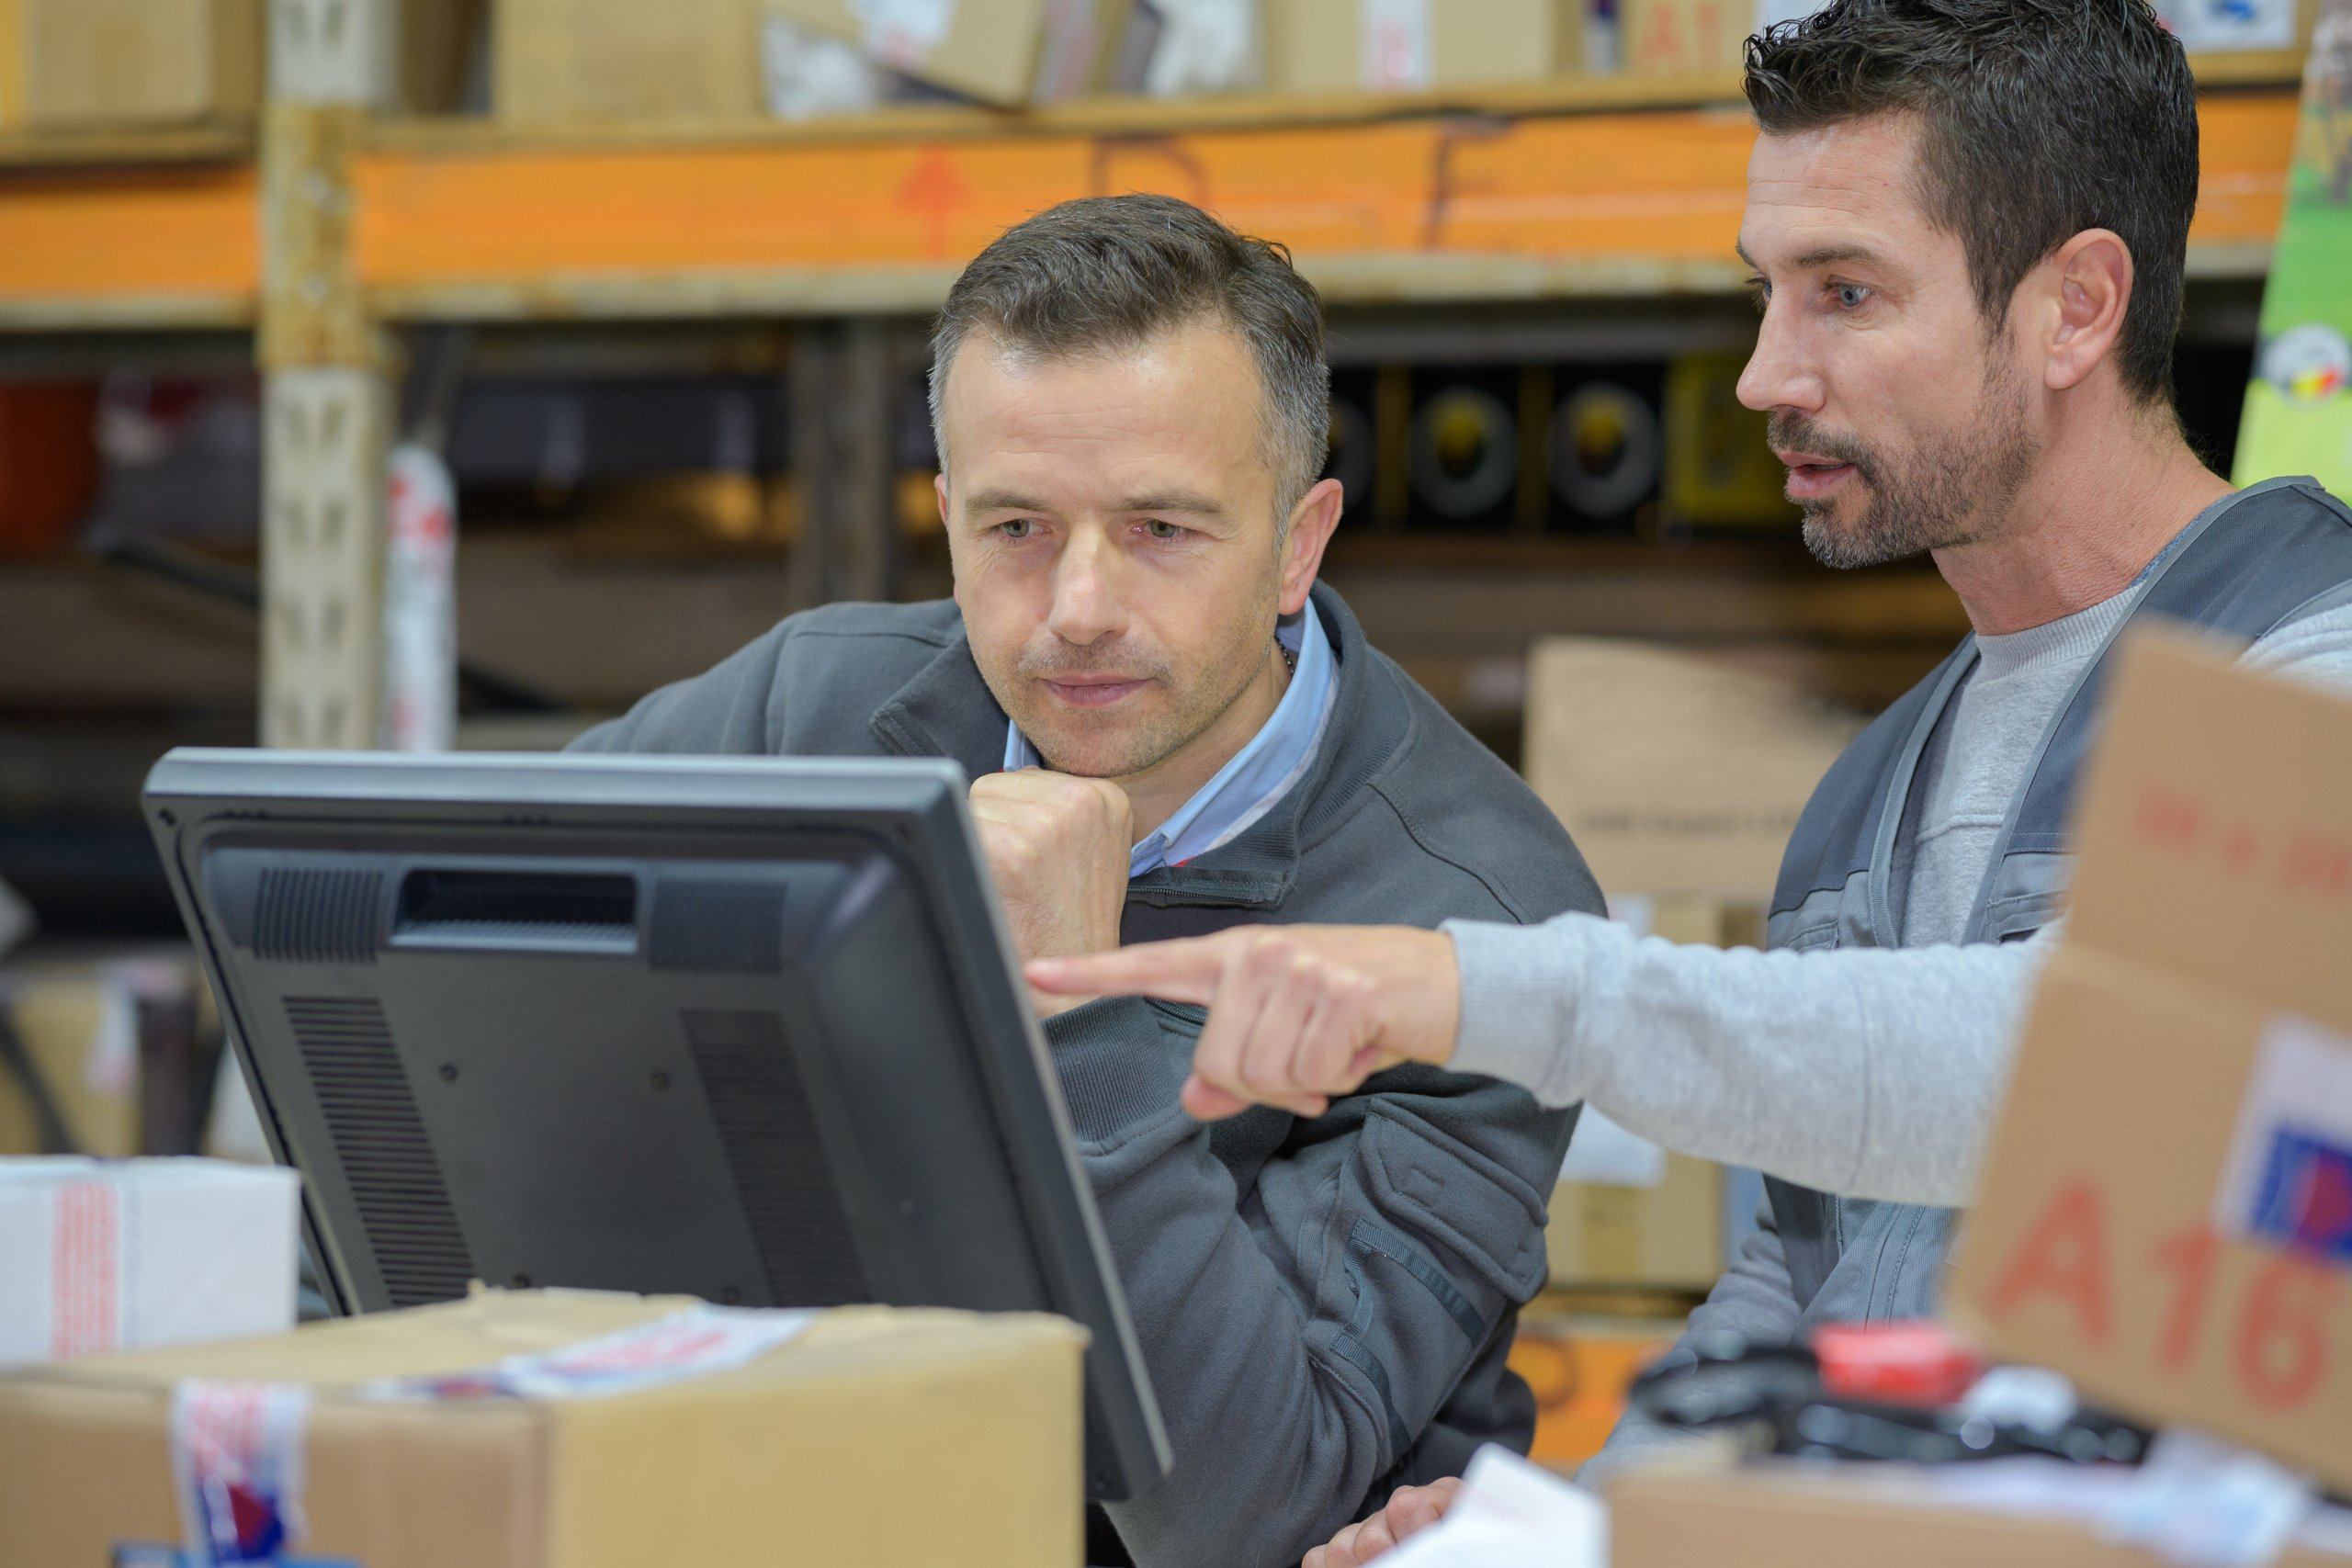 A Day in the Life: Warehouse Operations Manager